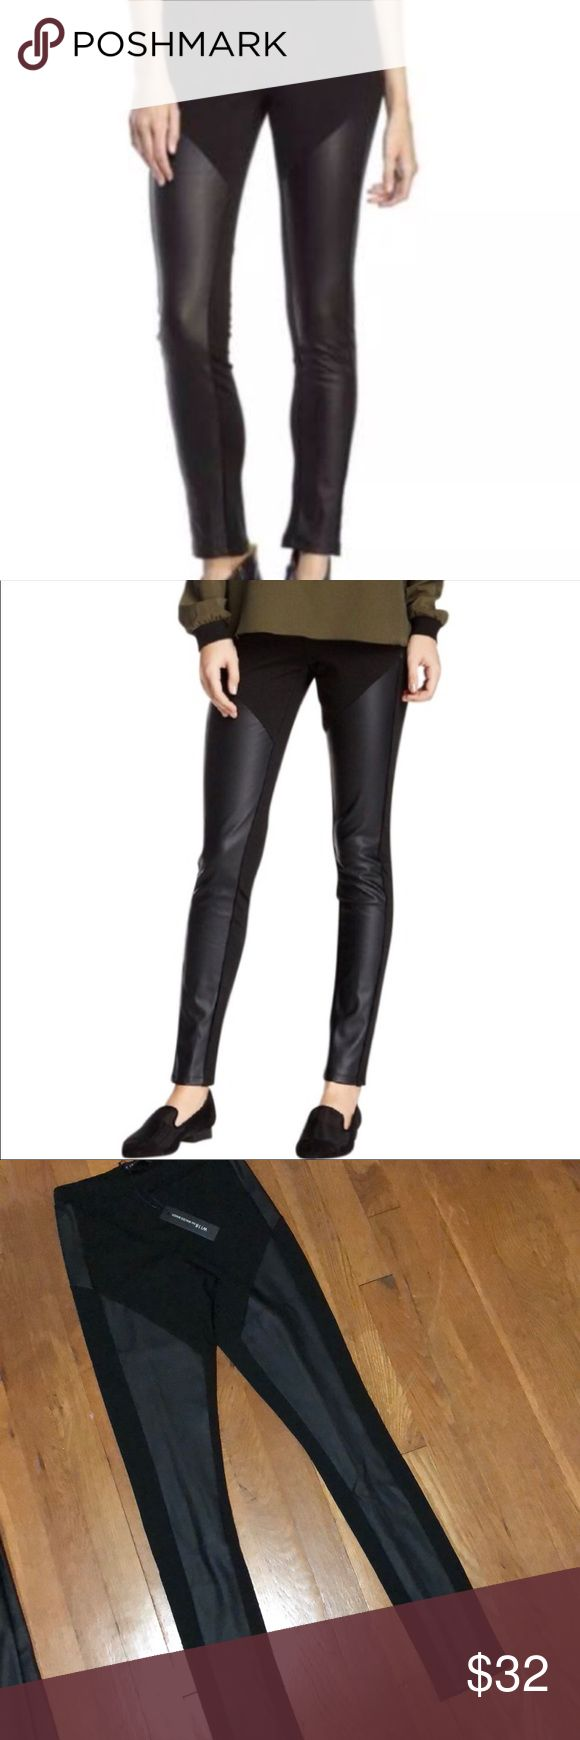 W118 Walter Baker Sylvia Skinny Pants Leggings W118 Walter Baker Sylvia Pant, fitted skinny leggings, black knit, faux leather panes,  elasticized waist, stunning fit. W118 by Walter Baker Pants Skinny